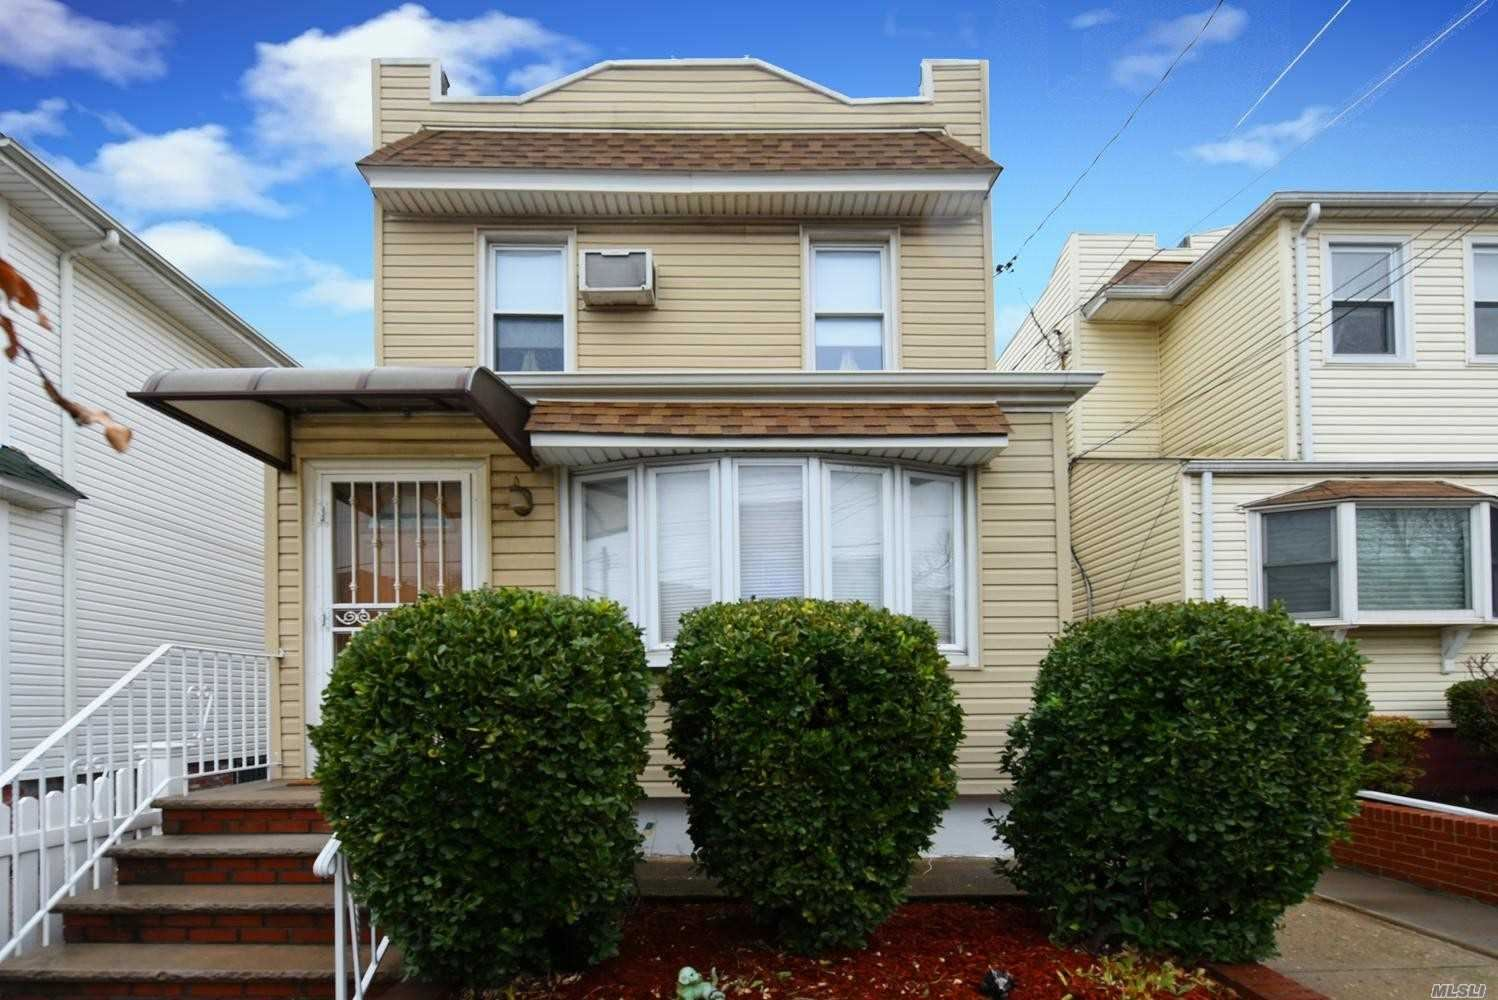 64-15 71st Street, Middle Village, NY 11379 - MLS#: 3198747